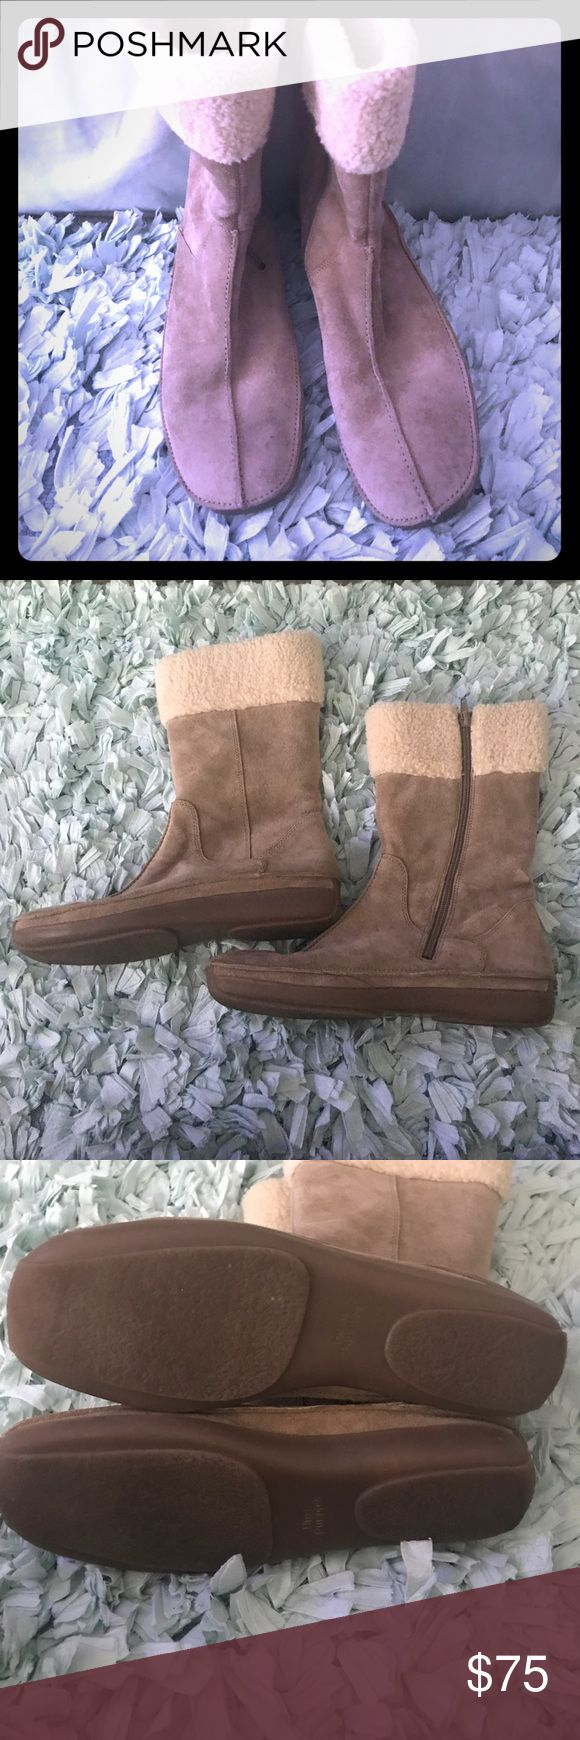 Sand/ Taupe suede colored hush puppies 🐶 boots🎉 • Soft suede leather uppers  • Breathable leather linings  • Rubber outsole for traction  • Dual side cut-outs  • Inside zipper • Flexible construction bends with the foot  Great preloved boots barely worn🤗 ready for a new 🏡 Hush Puppies Shoes Winter & Rain Boots